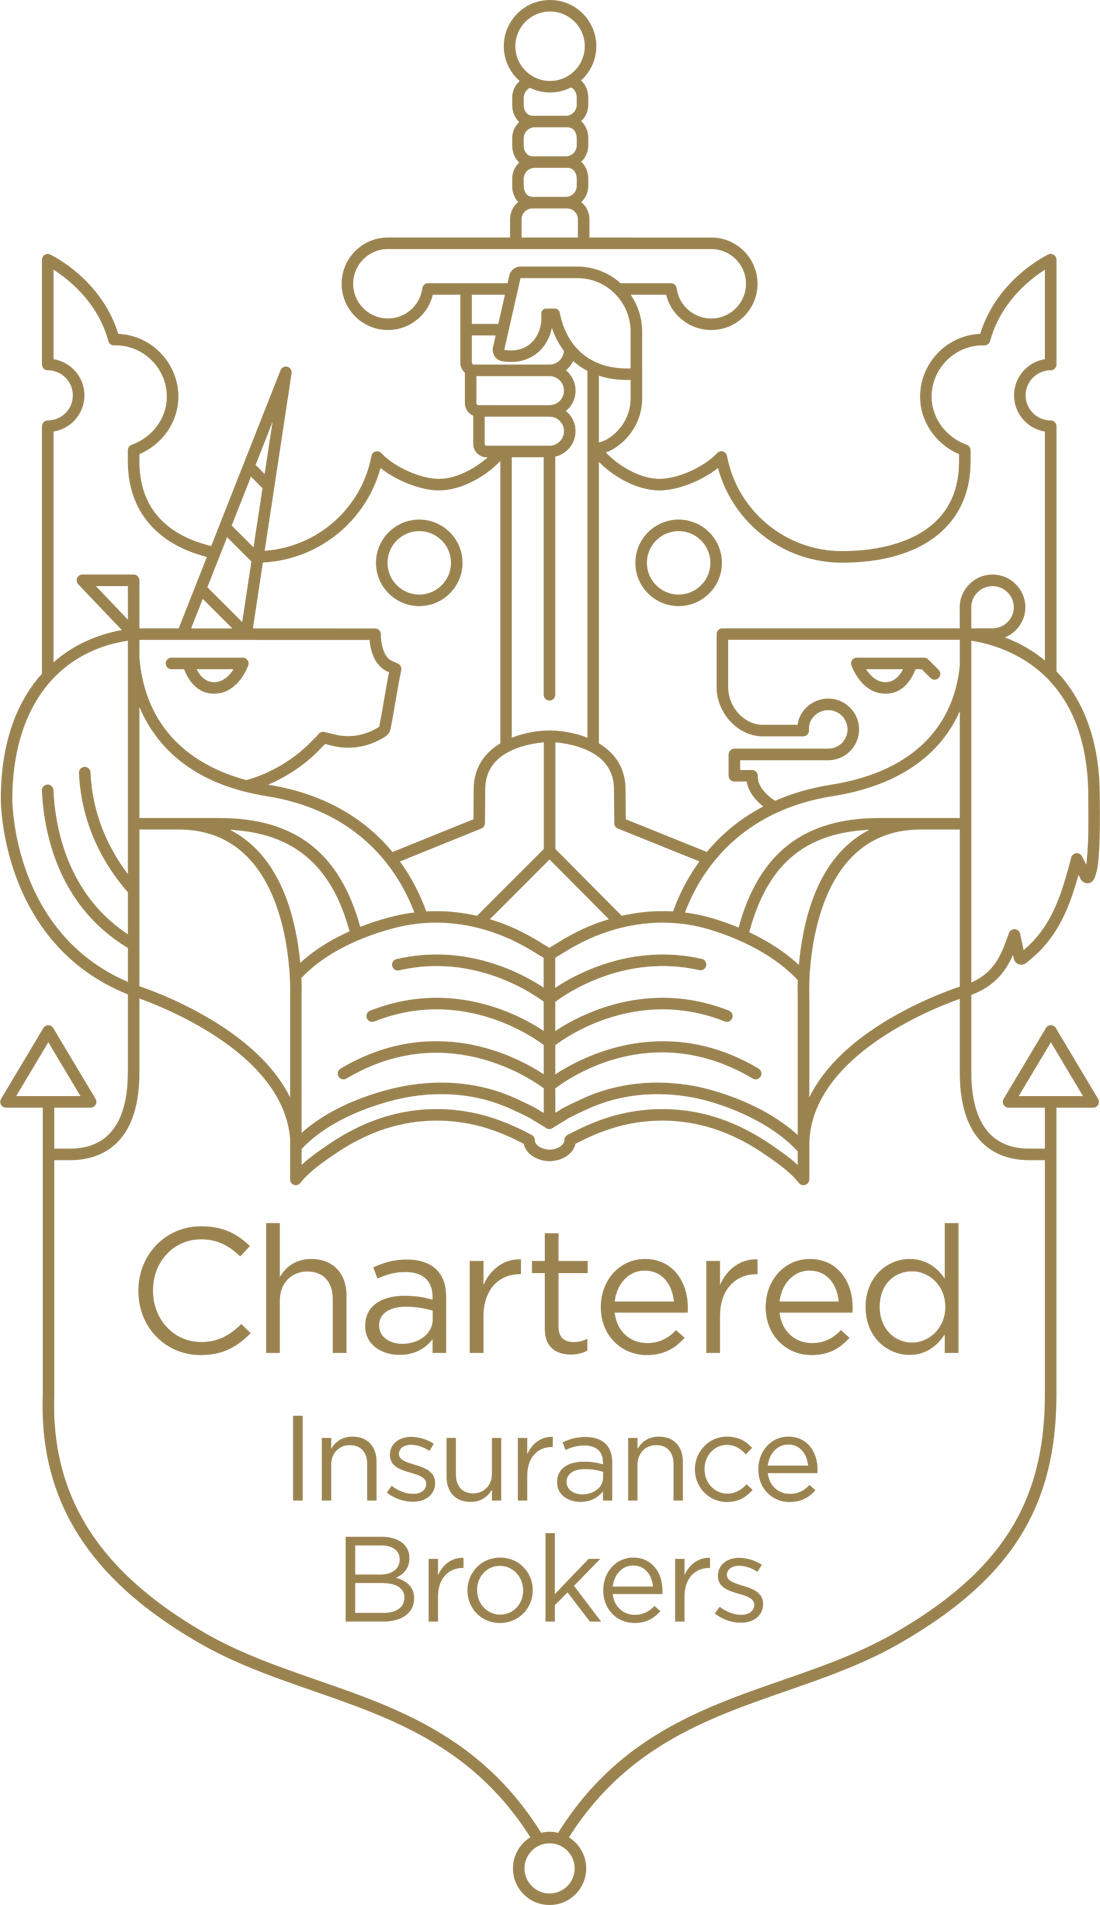 We Re Chartered Insurance Brokers Yutree Insurance Chartered Insurance Brokers